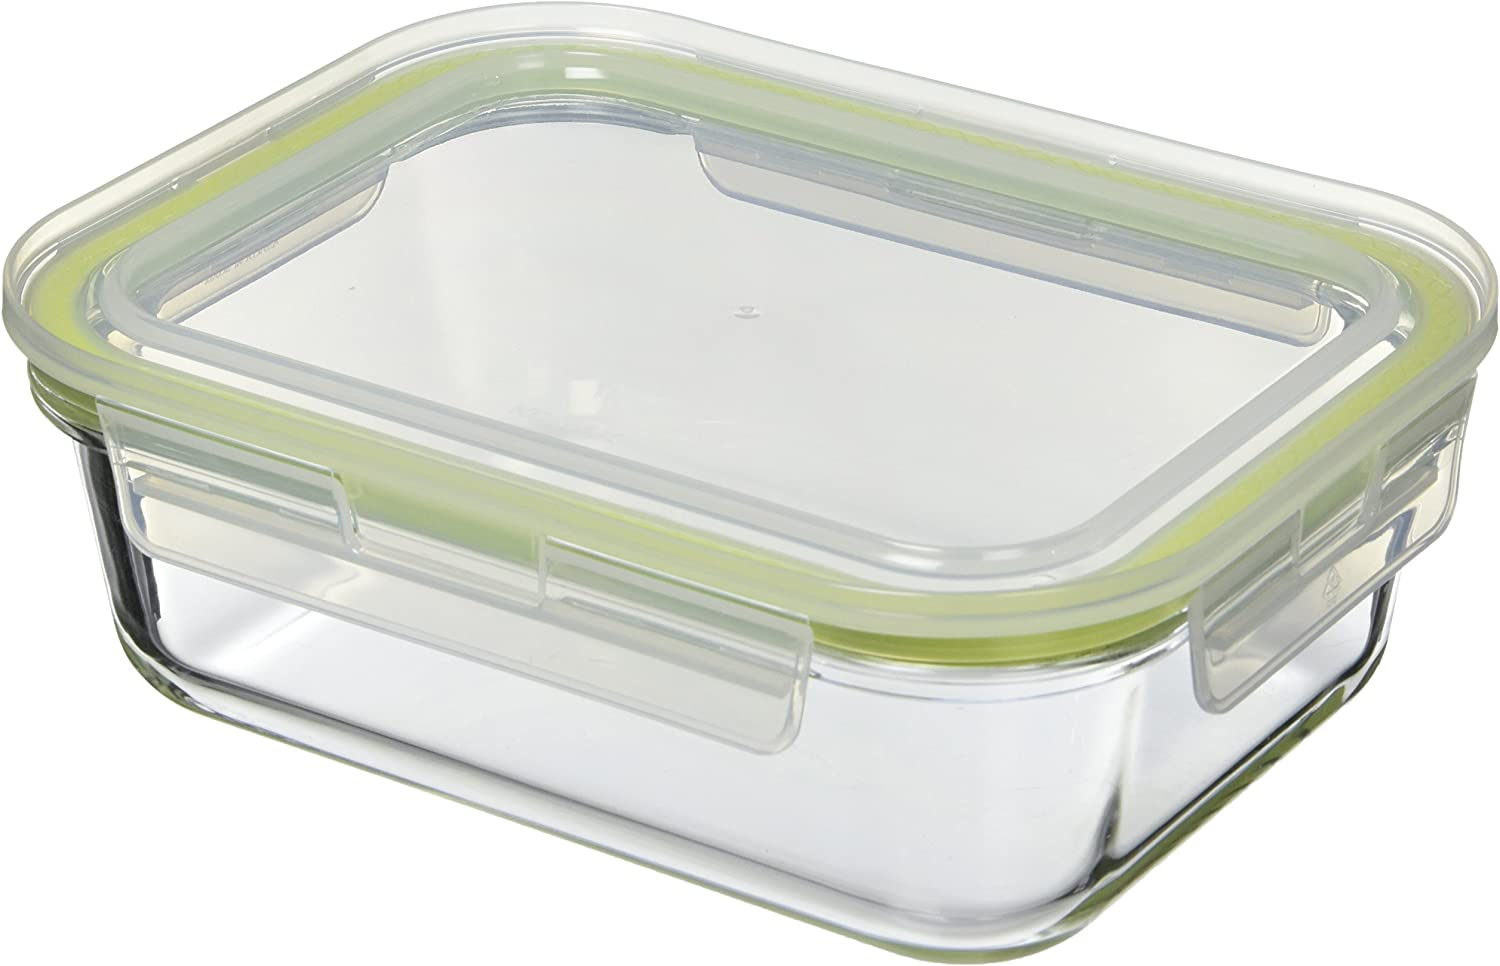 Komax A-1034 Storage Box Rectangular Oven 1520 ml Borosilicate Glass